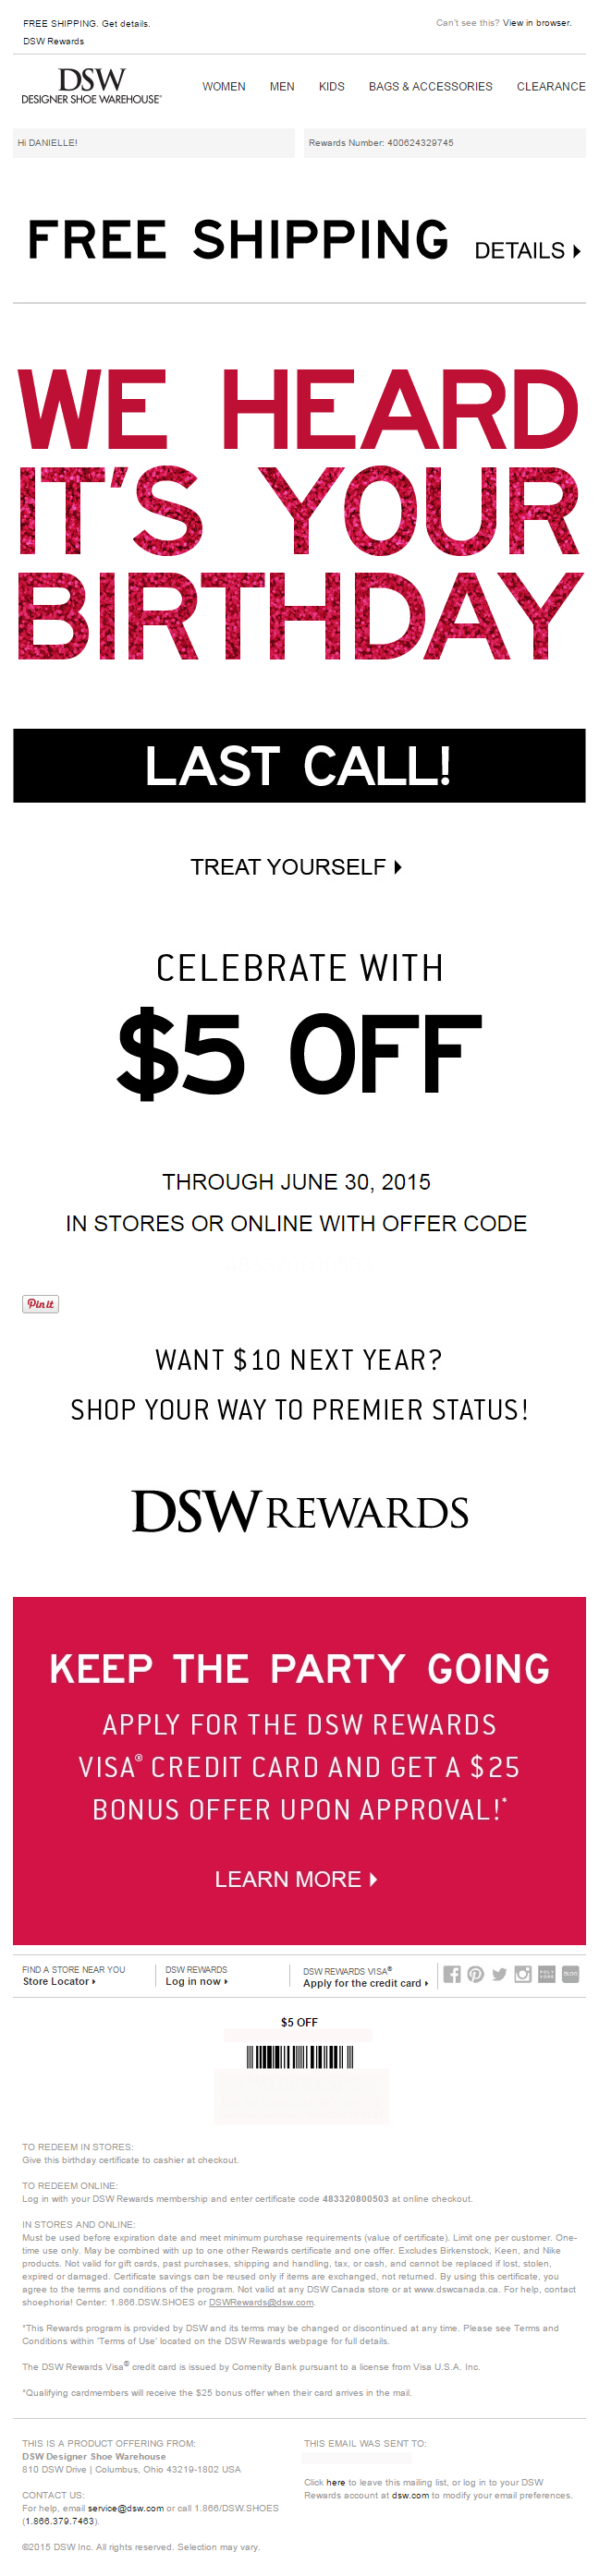 DSW birthday email